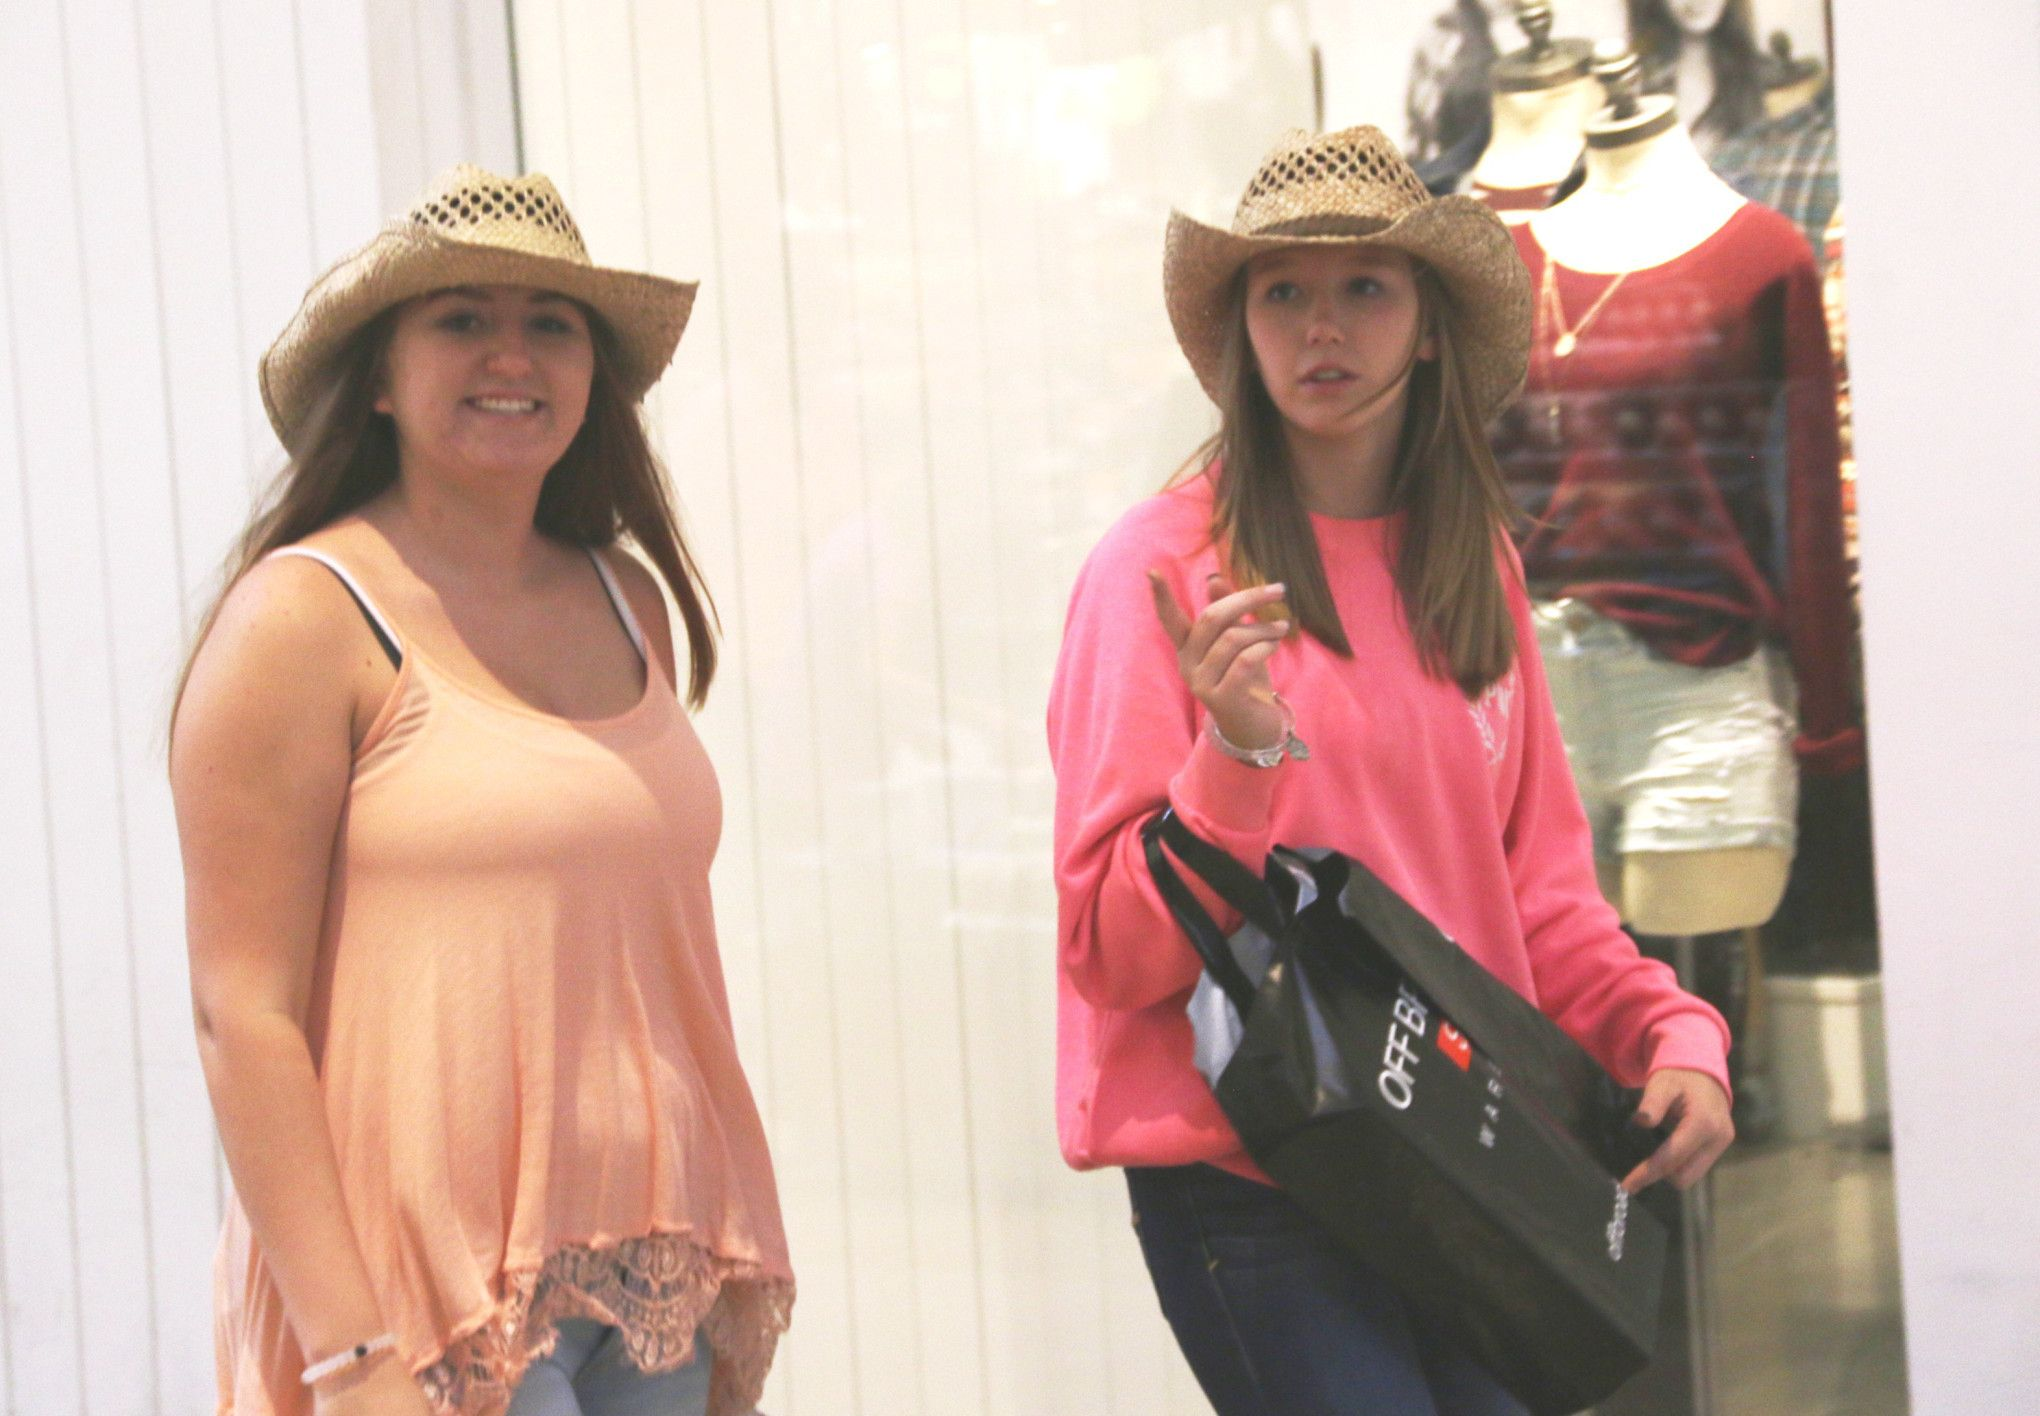 Searching for fall trendy styles at Opry Mills Mall, Nashville, TN – GSN Photography